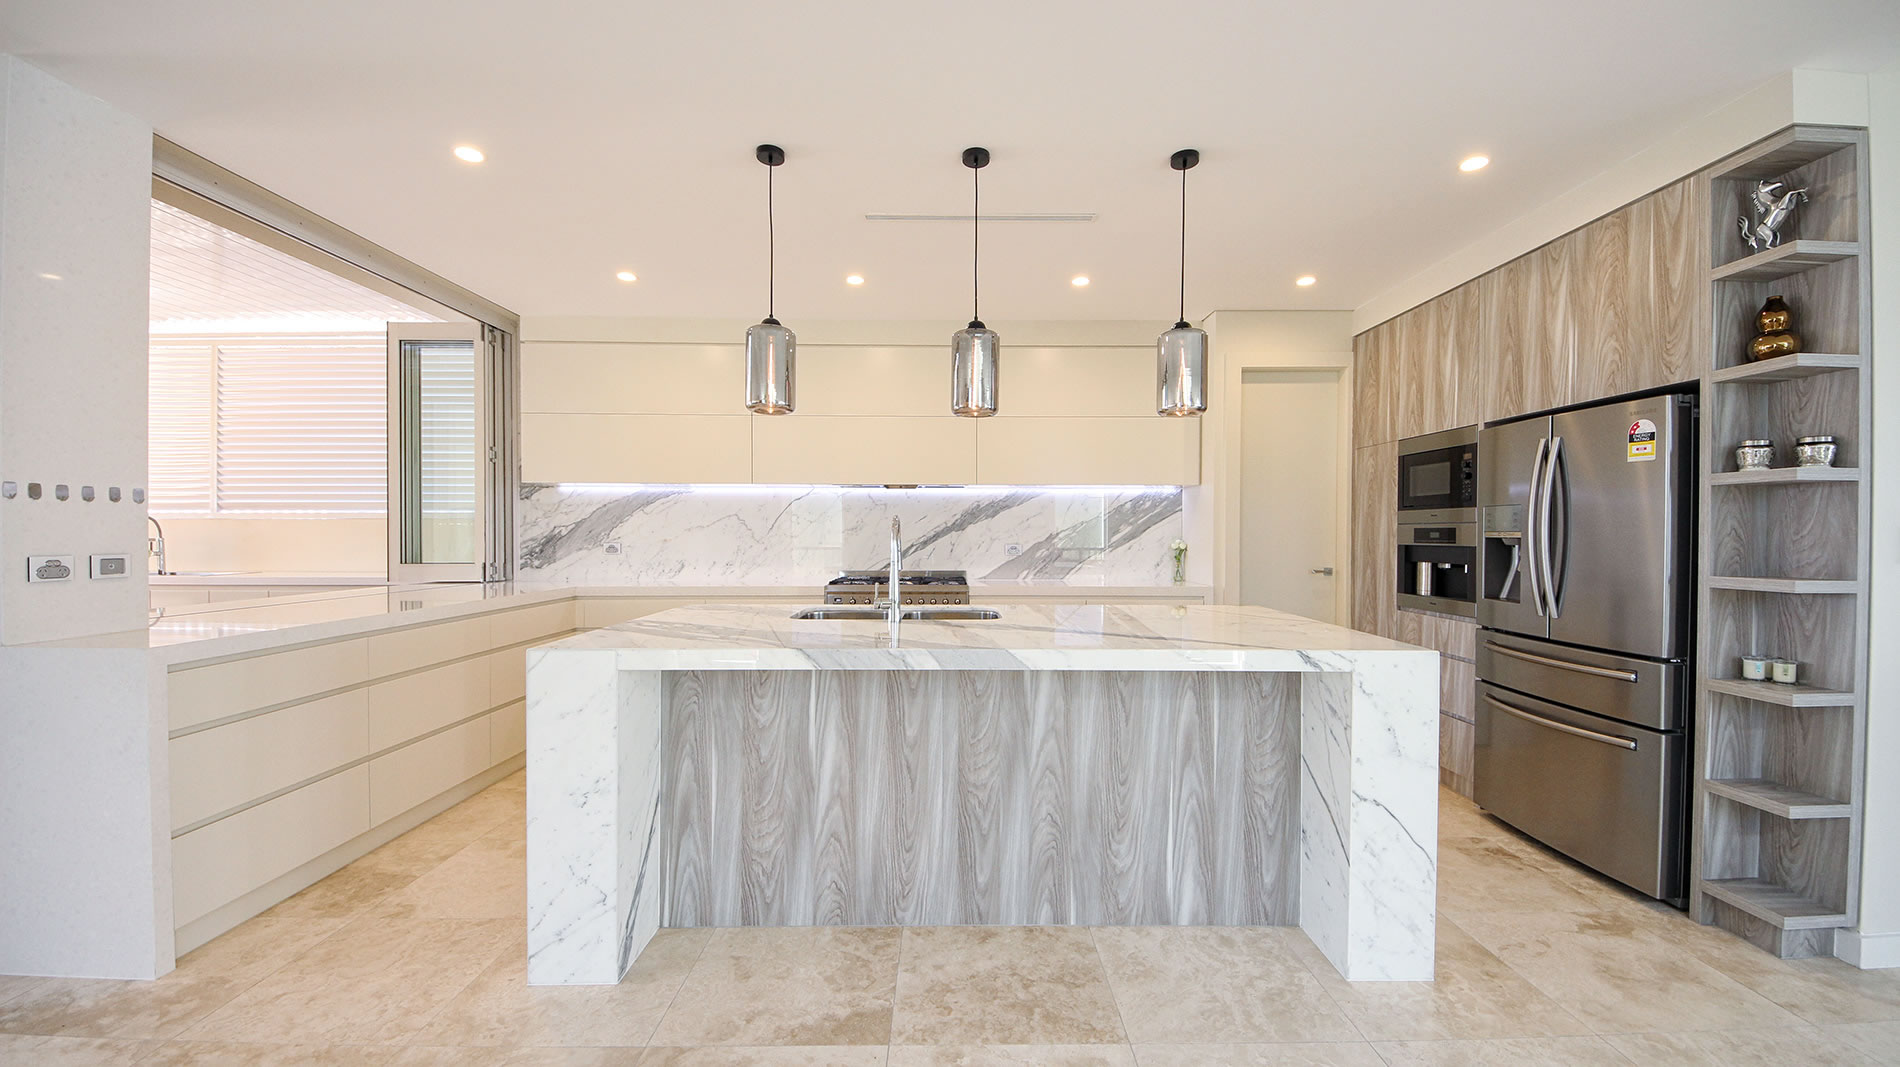 Kitchens sydney kitchen renovation perfect kitchens for Kitchen showrooms sydney west